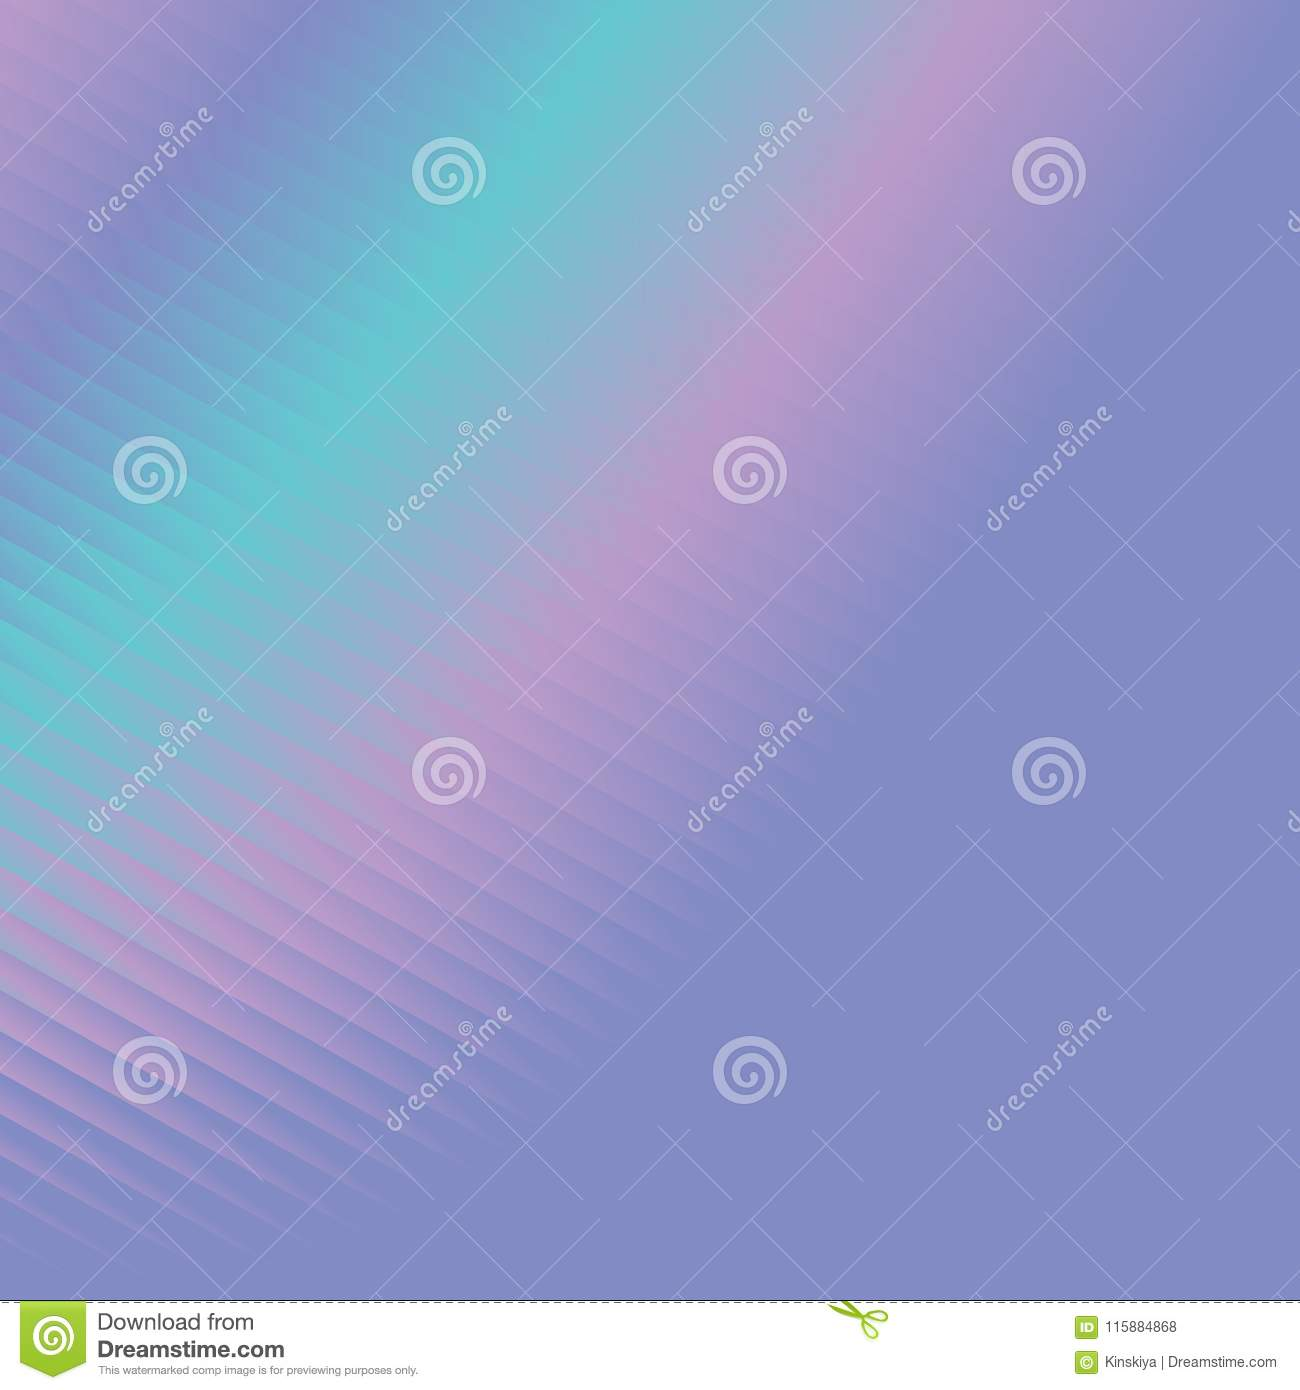 Trendy holographic neon rainbow background with copypast place.